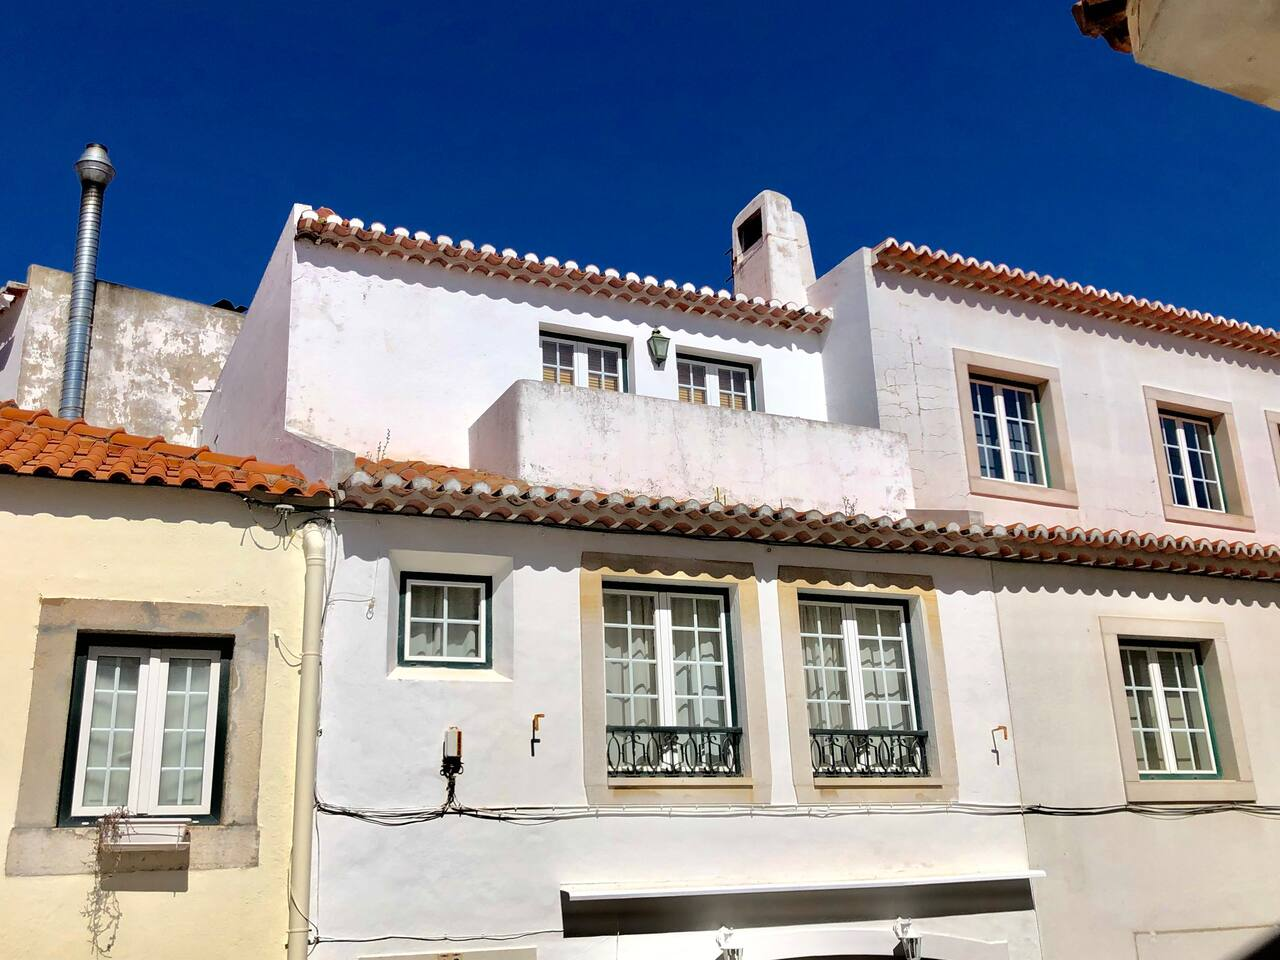 Casa Melro is located on a sunny street in the historical center of Cascais, and just 2 minutes walk from Cascais bay